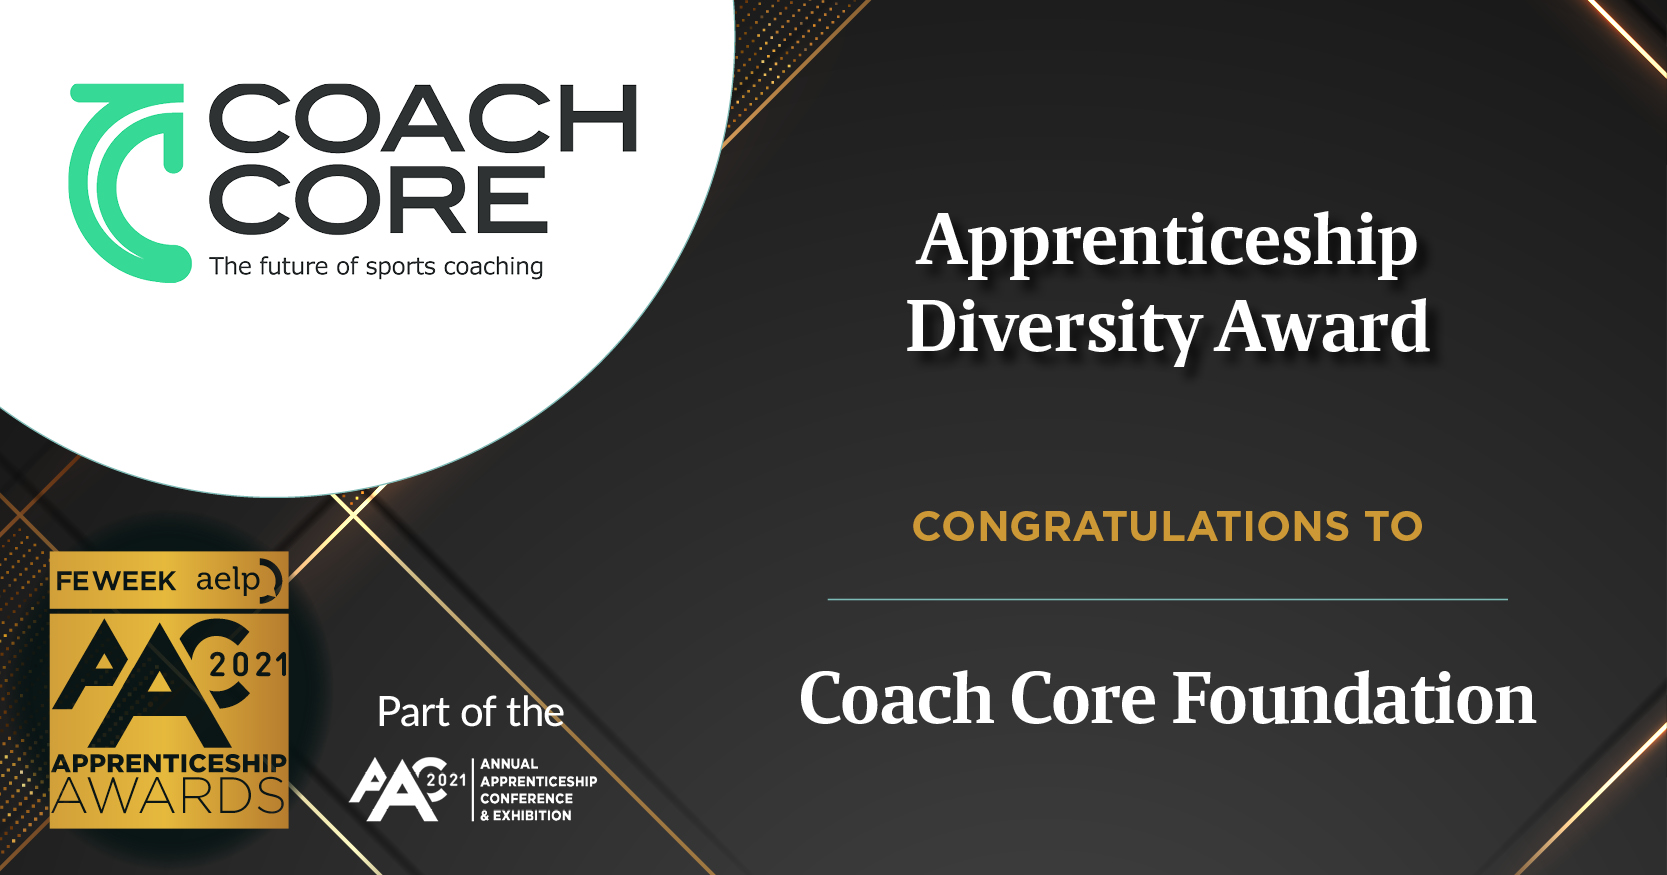 Apprenticeship Diversity Award banner with Coach Core's logo on it